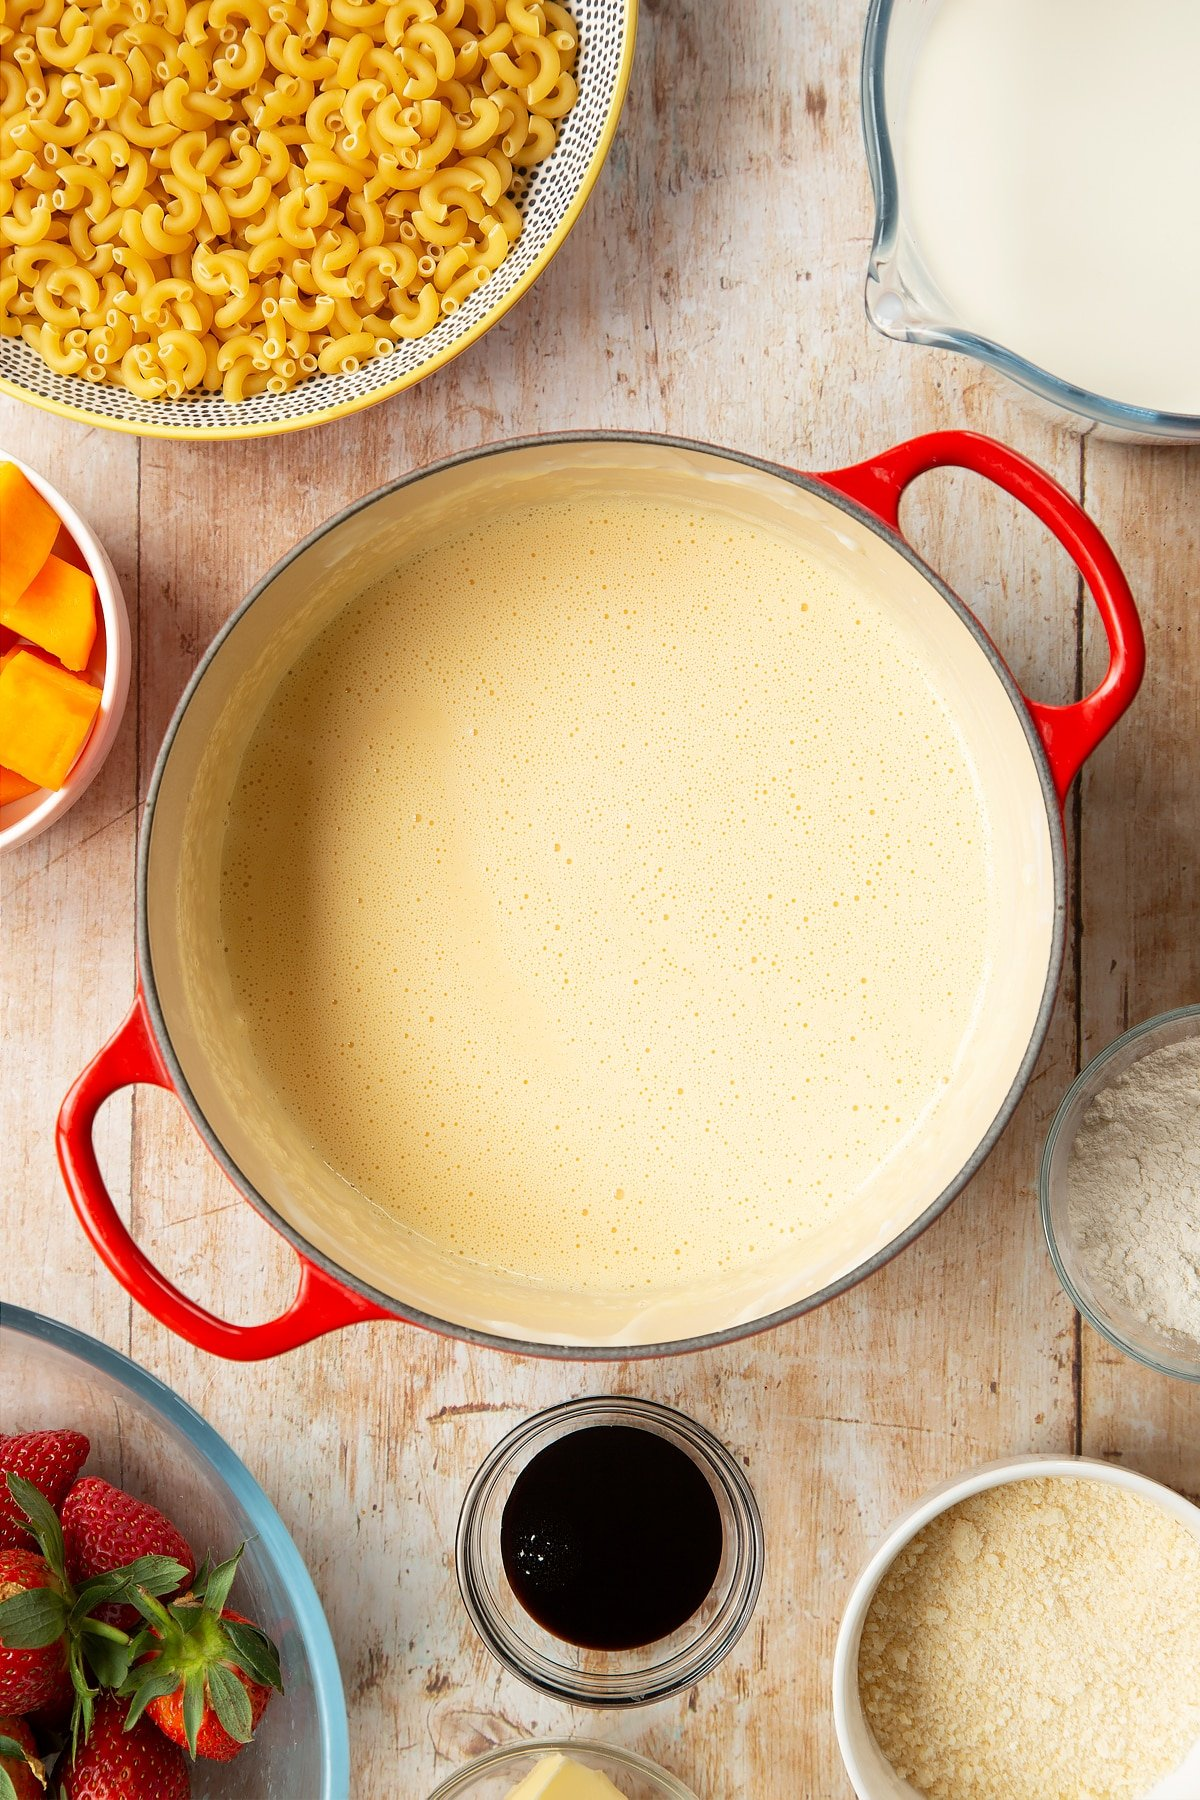 A saucepan containing a blended cheese sauce made with milk, butter, flour, Parmesan cheese and butternut squash. The pan is surrounded by ingredients for strawberry pasta.